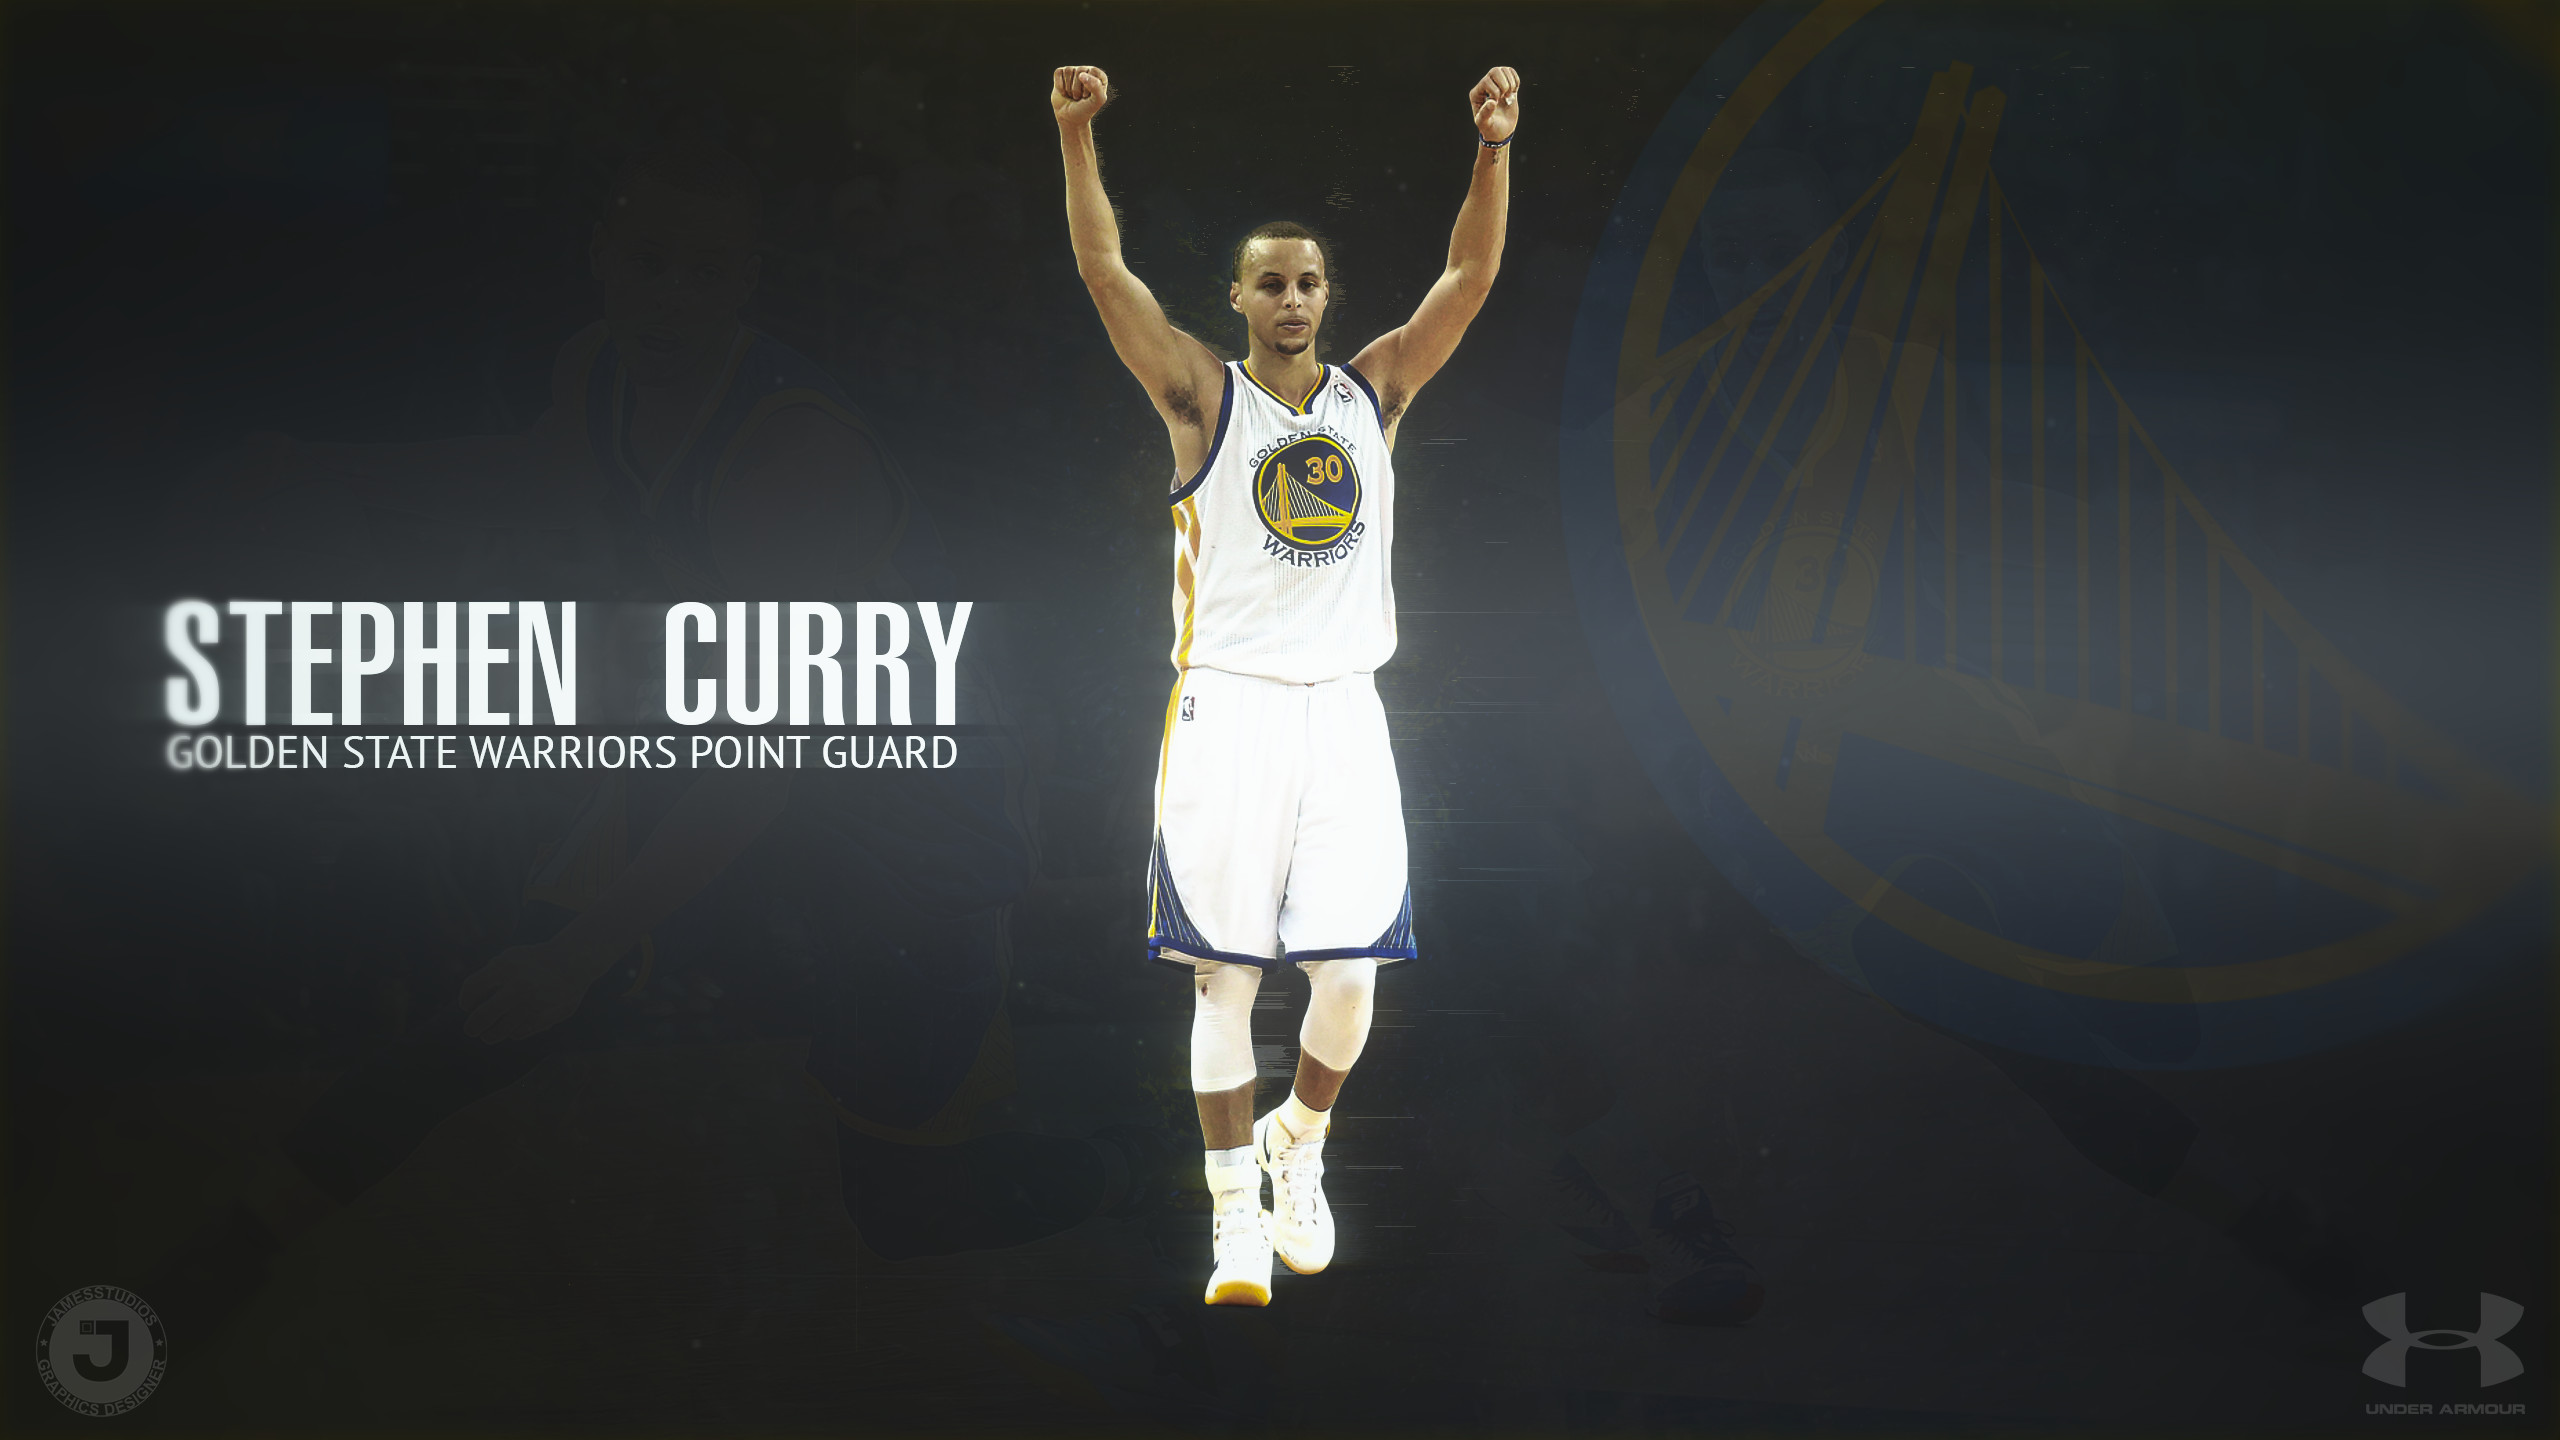 2560x1440 Stephen Curry Warriors Basketball - Best Wallpaper HD